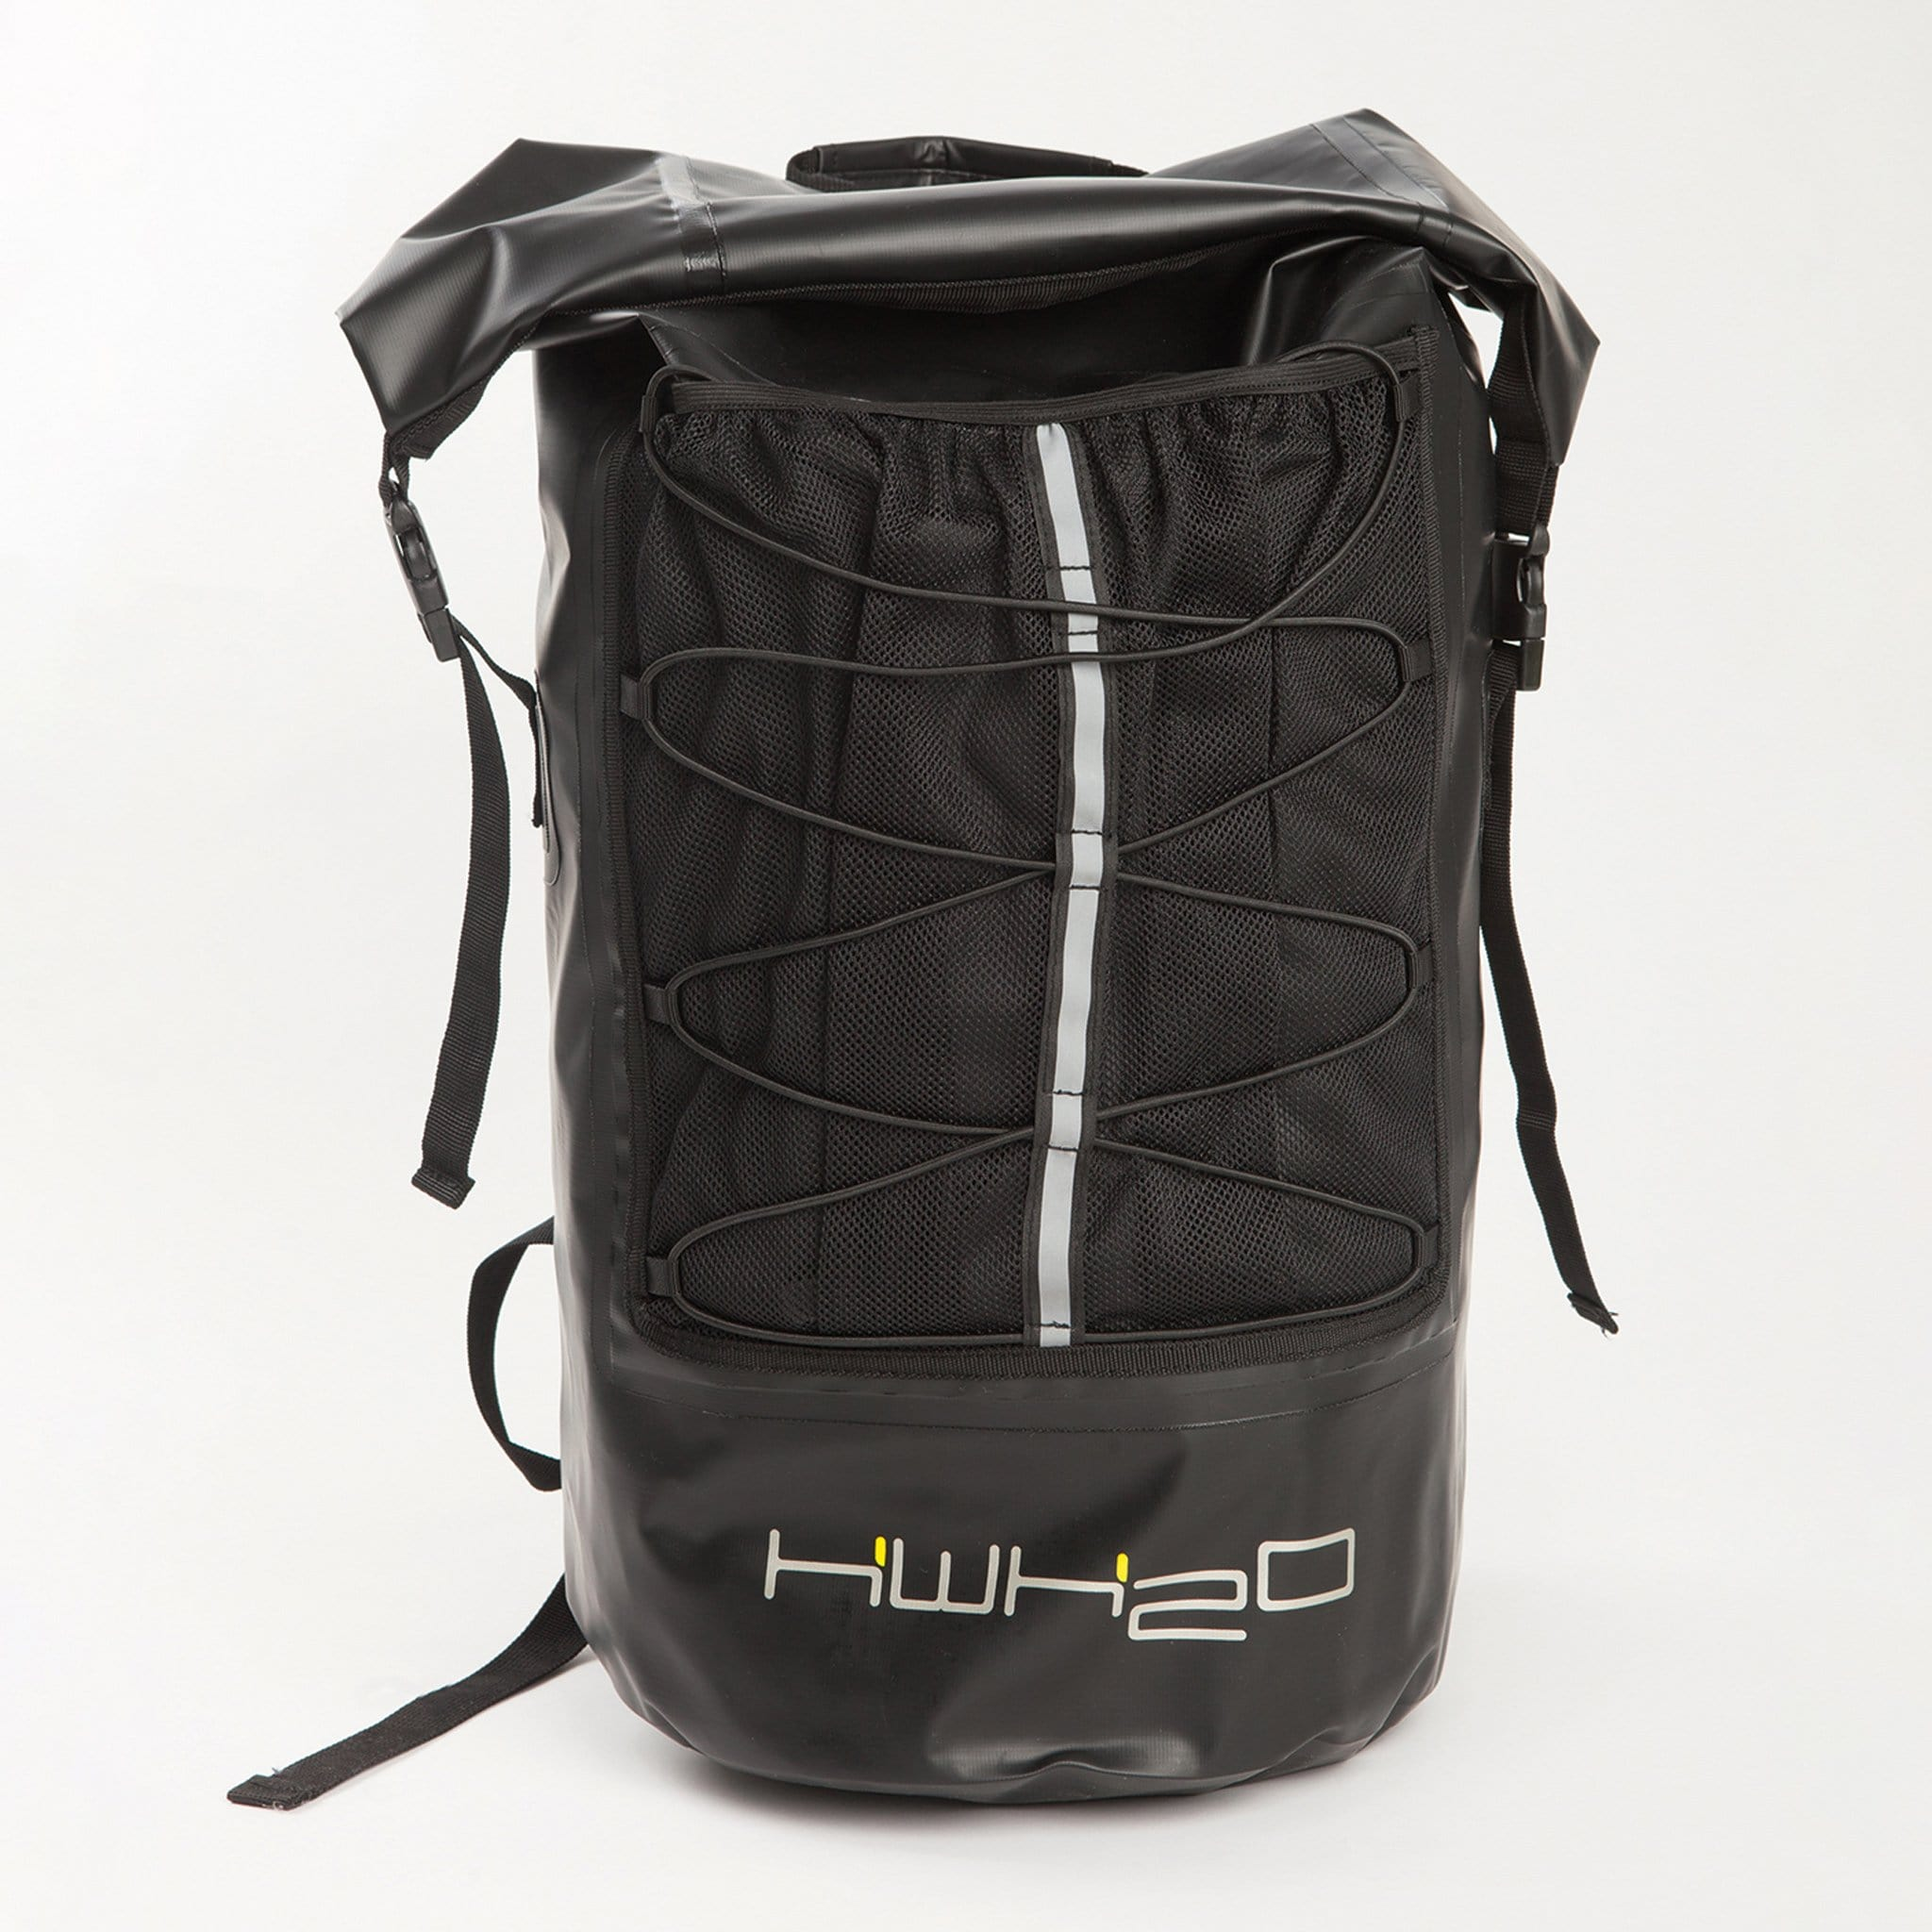 Horseware HWH2O Waterproof Rucksack COHRKC Black Back View